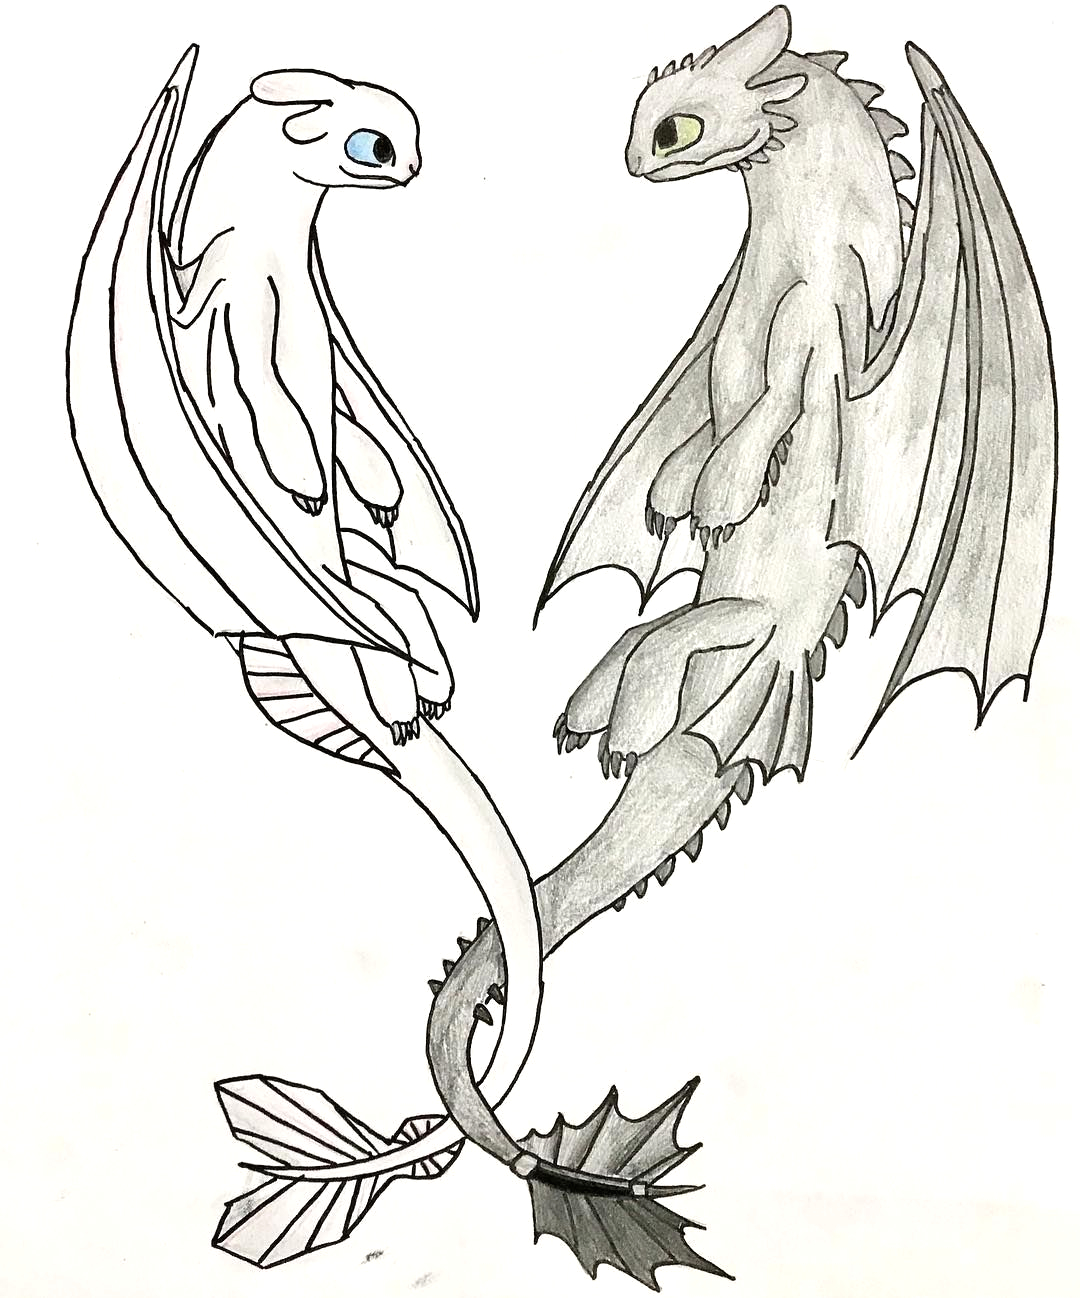 Toothless and Light Fury together Coloring Pages toothless and Light Fury to Her Coloring Pages Lautigamu